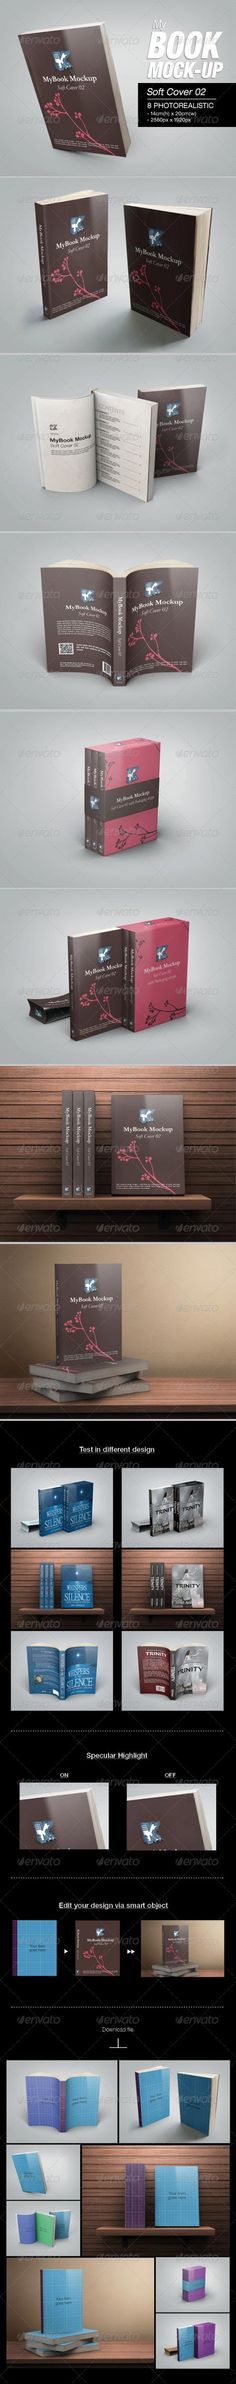 MyBook Mock-up – Soft Cover 02 6828697 » Free Hero Graphic Design: Special GFX Posts Vectors AEP Projects PSD Sources Web Templates 3D Stock Images | HeroGFX.com